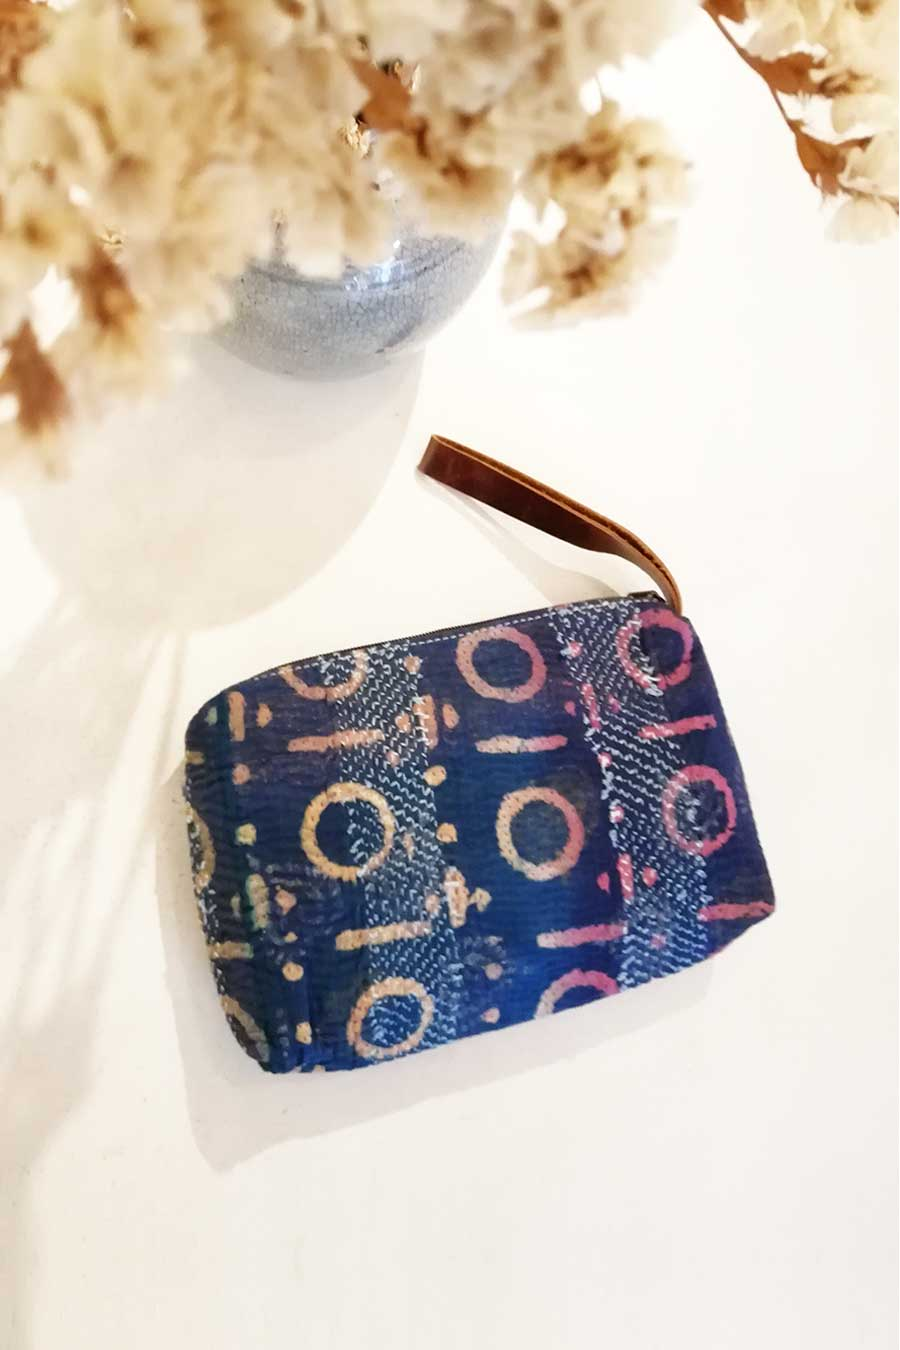 Vintage Block Print Fabric Clutch Bag